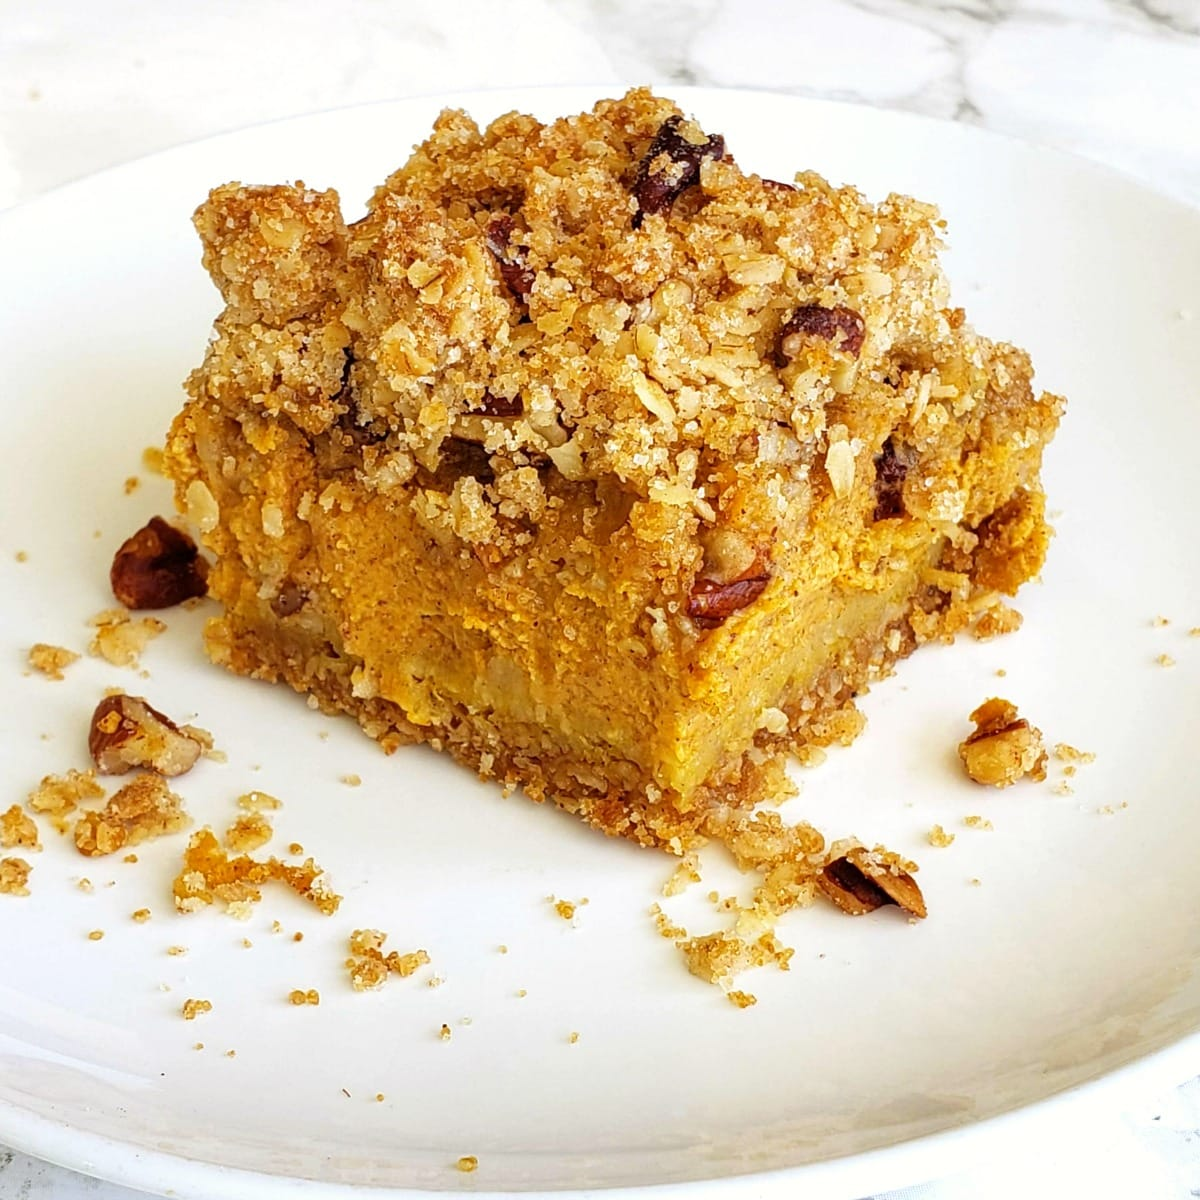 Pumpkin Pie Bars with Oat Crumble Topping on a white plate on a marble counter